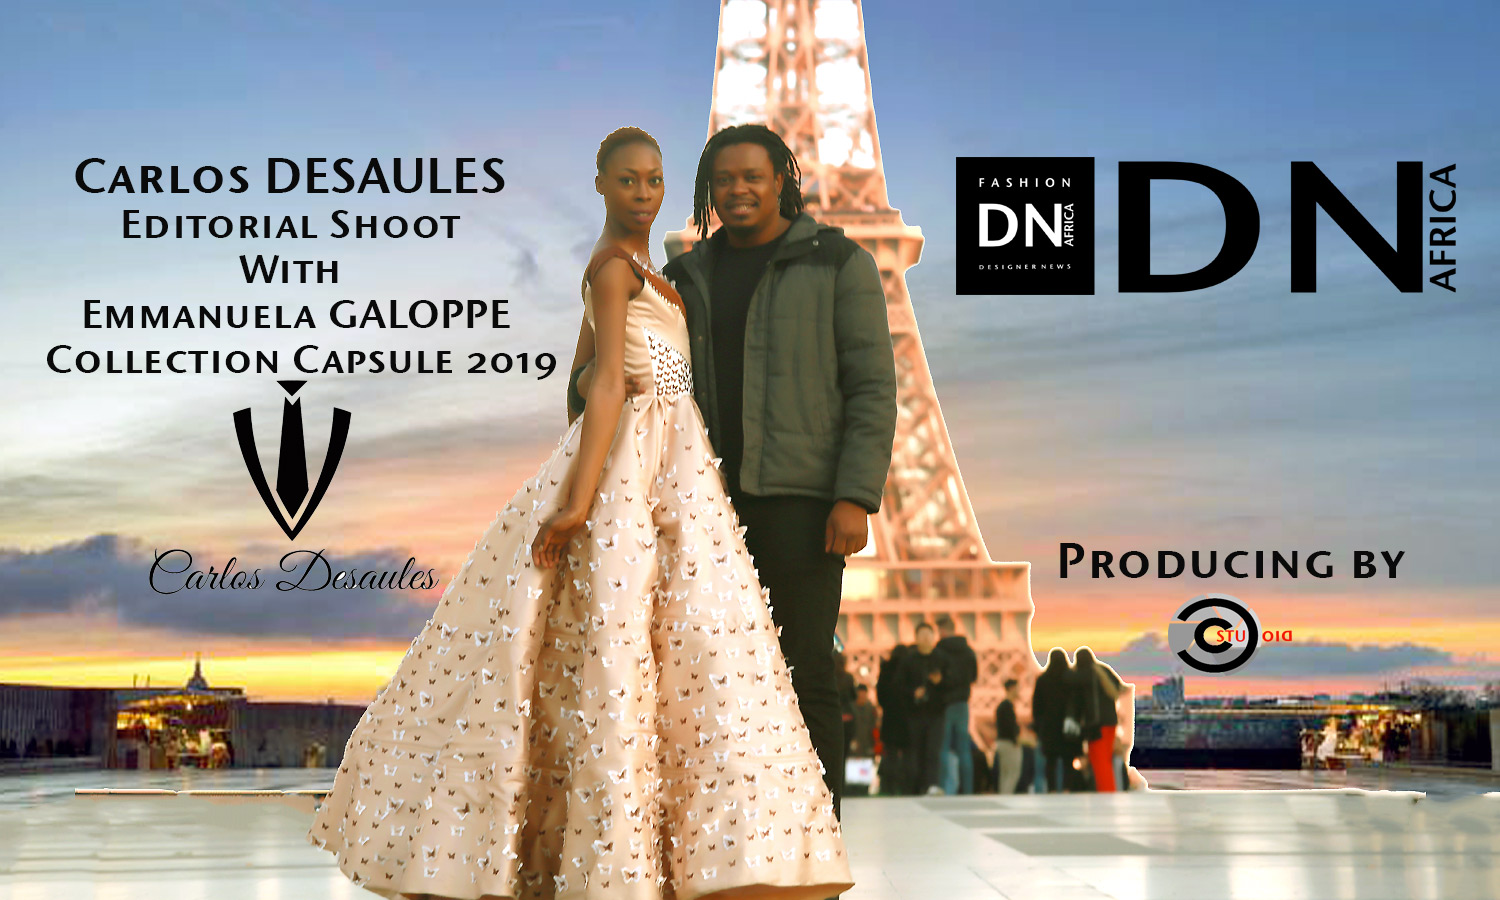 AFRICAN FASHION STYLE MAGAZINE - Designer Carlos DESAULES - Collection Capsule 2019 - Model Emmanuela Galoppe - Official Media Partner DN AFRICA - STUDIO 24 NIGERIA - STUDIO 24 INTERNATIONAL - Ifeanyi Christopher Oputa MD AND CEO OF COLVI LIMITED AND STUDIO 24 - CHEVEUX CHERIE and CHEVEUX CHERIE STUDIO BY MARIEME DUBOZ- Fashion Editor Edith DALIGOU